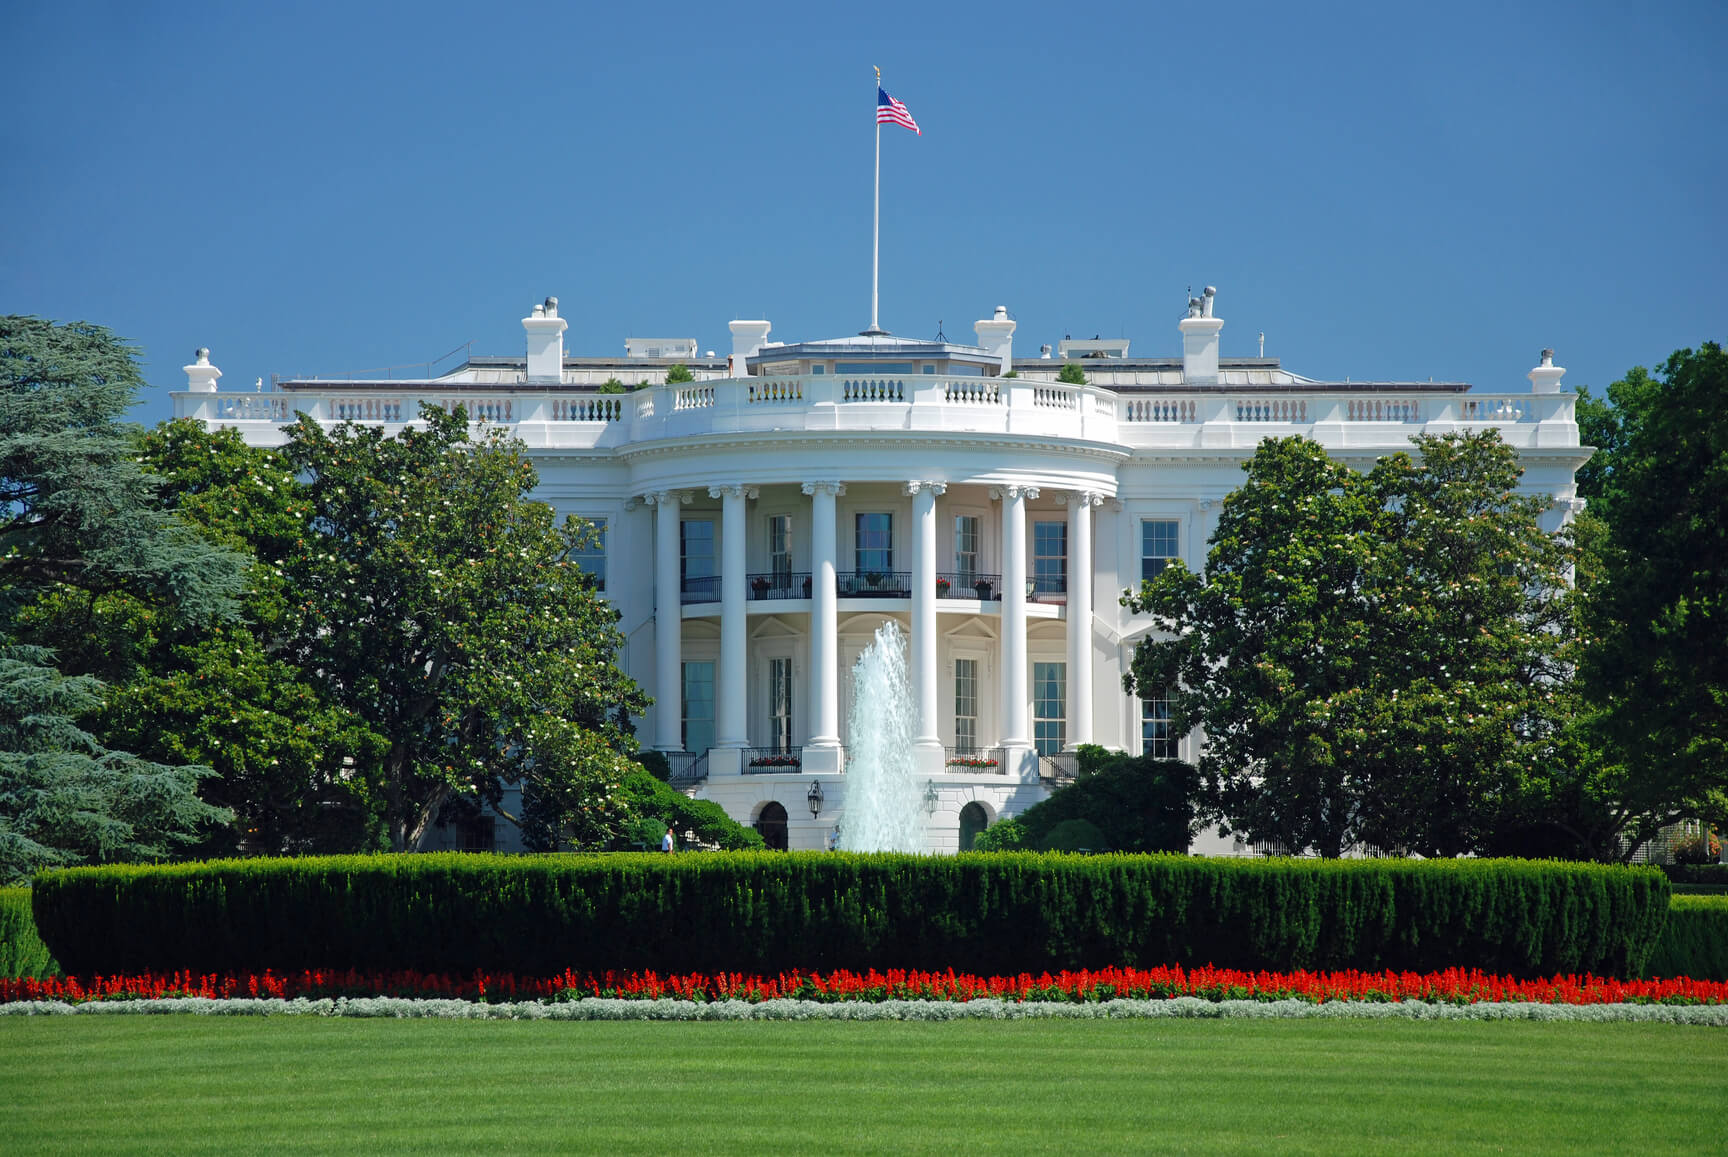 Santiago, Chile to Washington DC, USA for only $428 USD roundtrip (Oct-May dates)